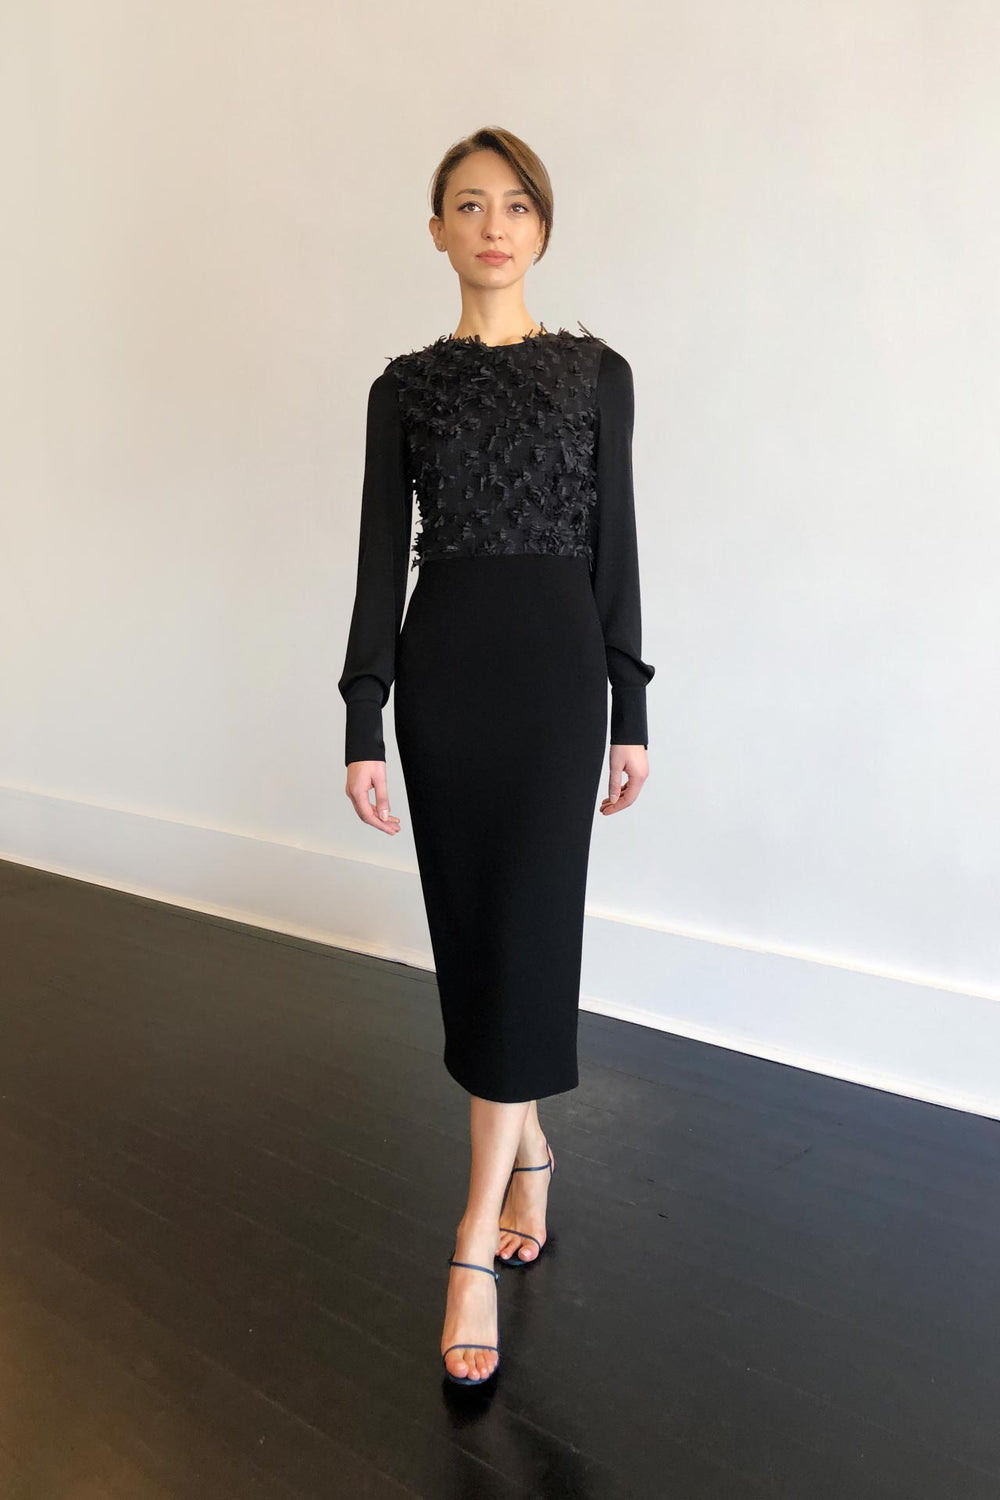 Fashion Designer CARL KAPP collection | Onyx structured cocktail dress with sleeves Black | Sydney Australia